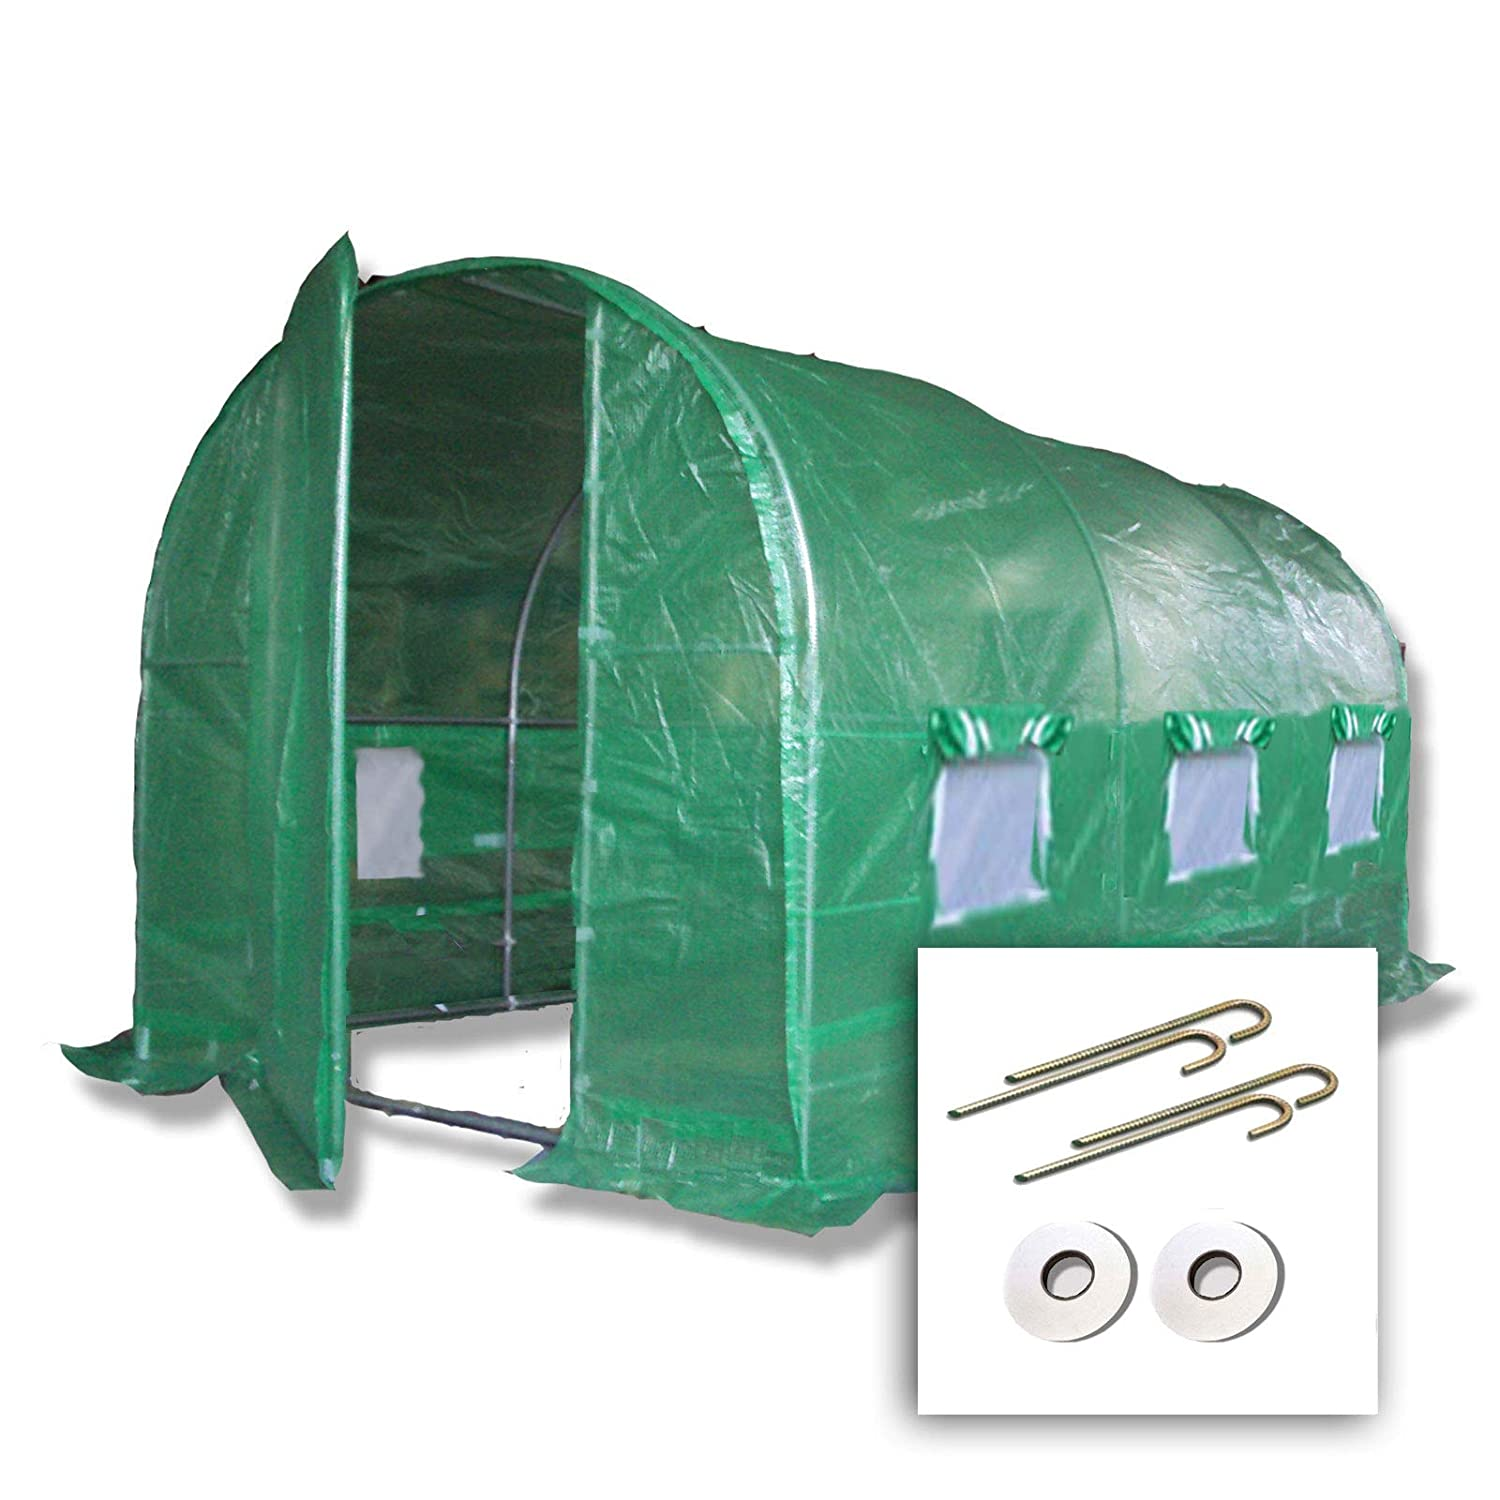 4m x 2m + Ground Anchor Kit Choose 3m x 2m, 4m x 2m or 3m x 6m Polytunnel + Ground Anchor Kit.  Strongest In It's Class  a fully Galvanised Structure with more internal bracing than all others  Metal Hinged Door   Groundbar Kit. (4m x 2m + Kit)